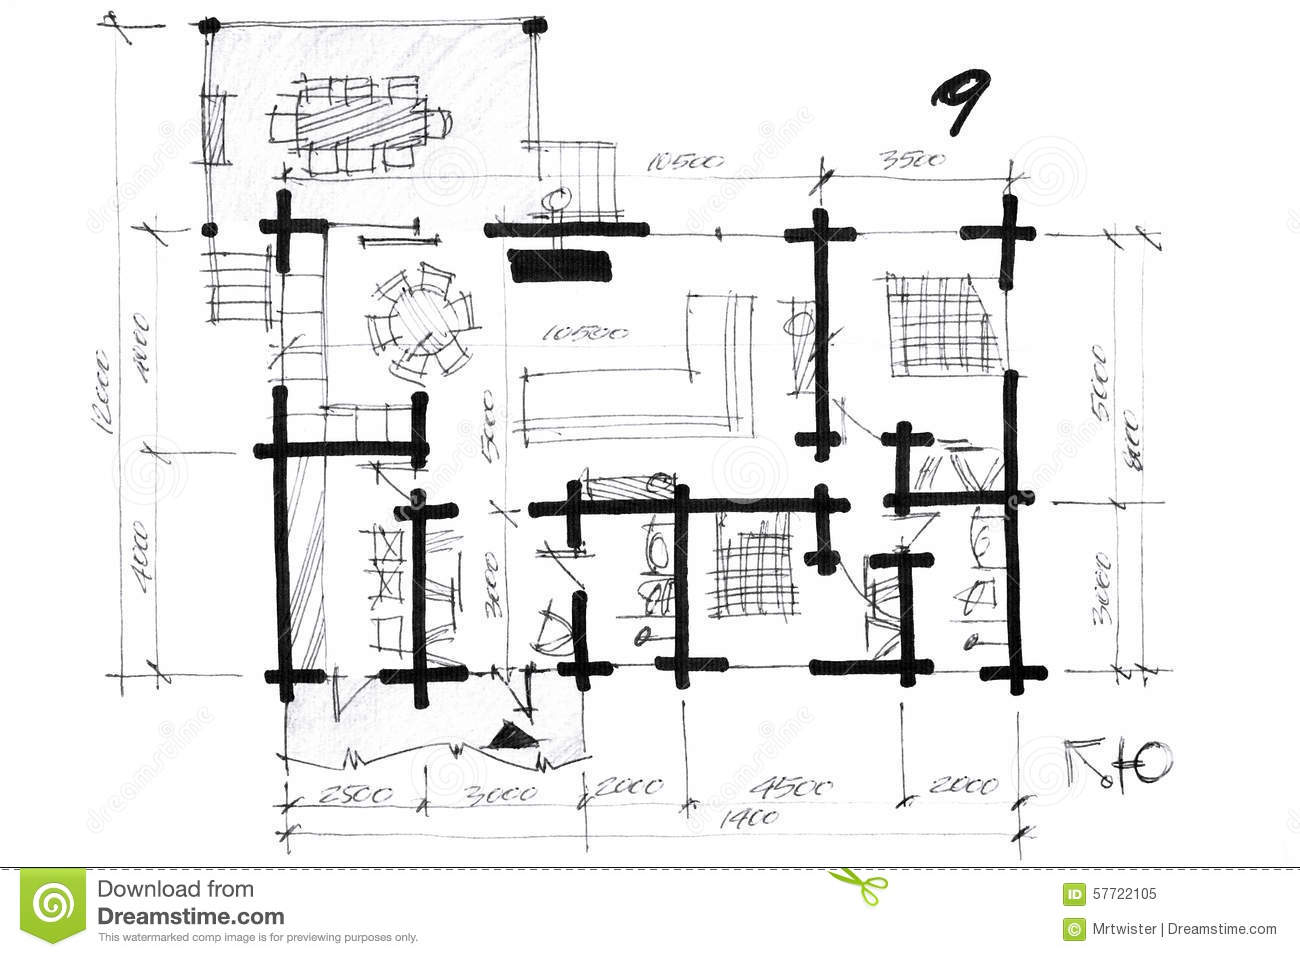 Monochrome Freehand Of A House Layout Stock Illustration ... on home plans with mudroom and pantry, home plan drawings, home with plans popular, home plan colors, office layout ideas, home builders, post and beam ideas, home plan symbols, home plan services, home plan software, home plan help, home plan solutions, wedding cards ideas, home plan designs, home plan books, home plan names, home floor plans,